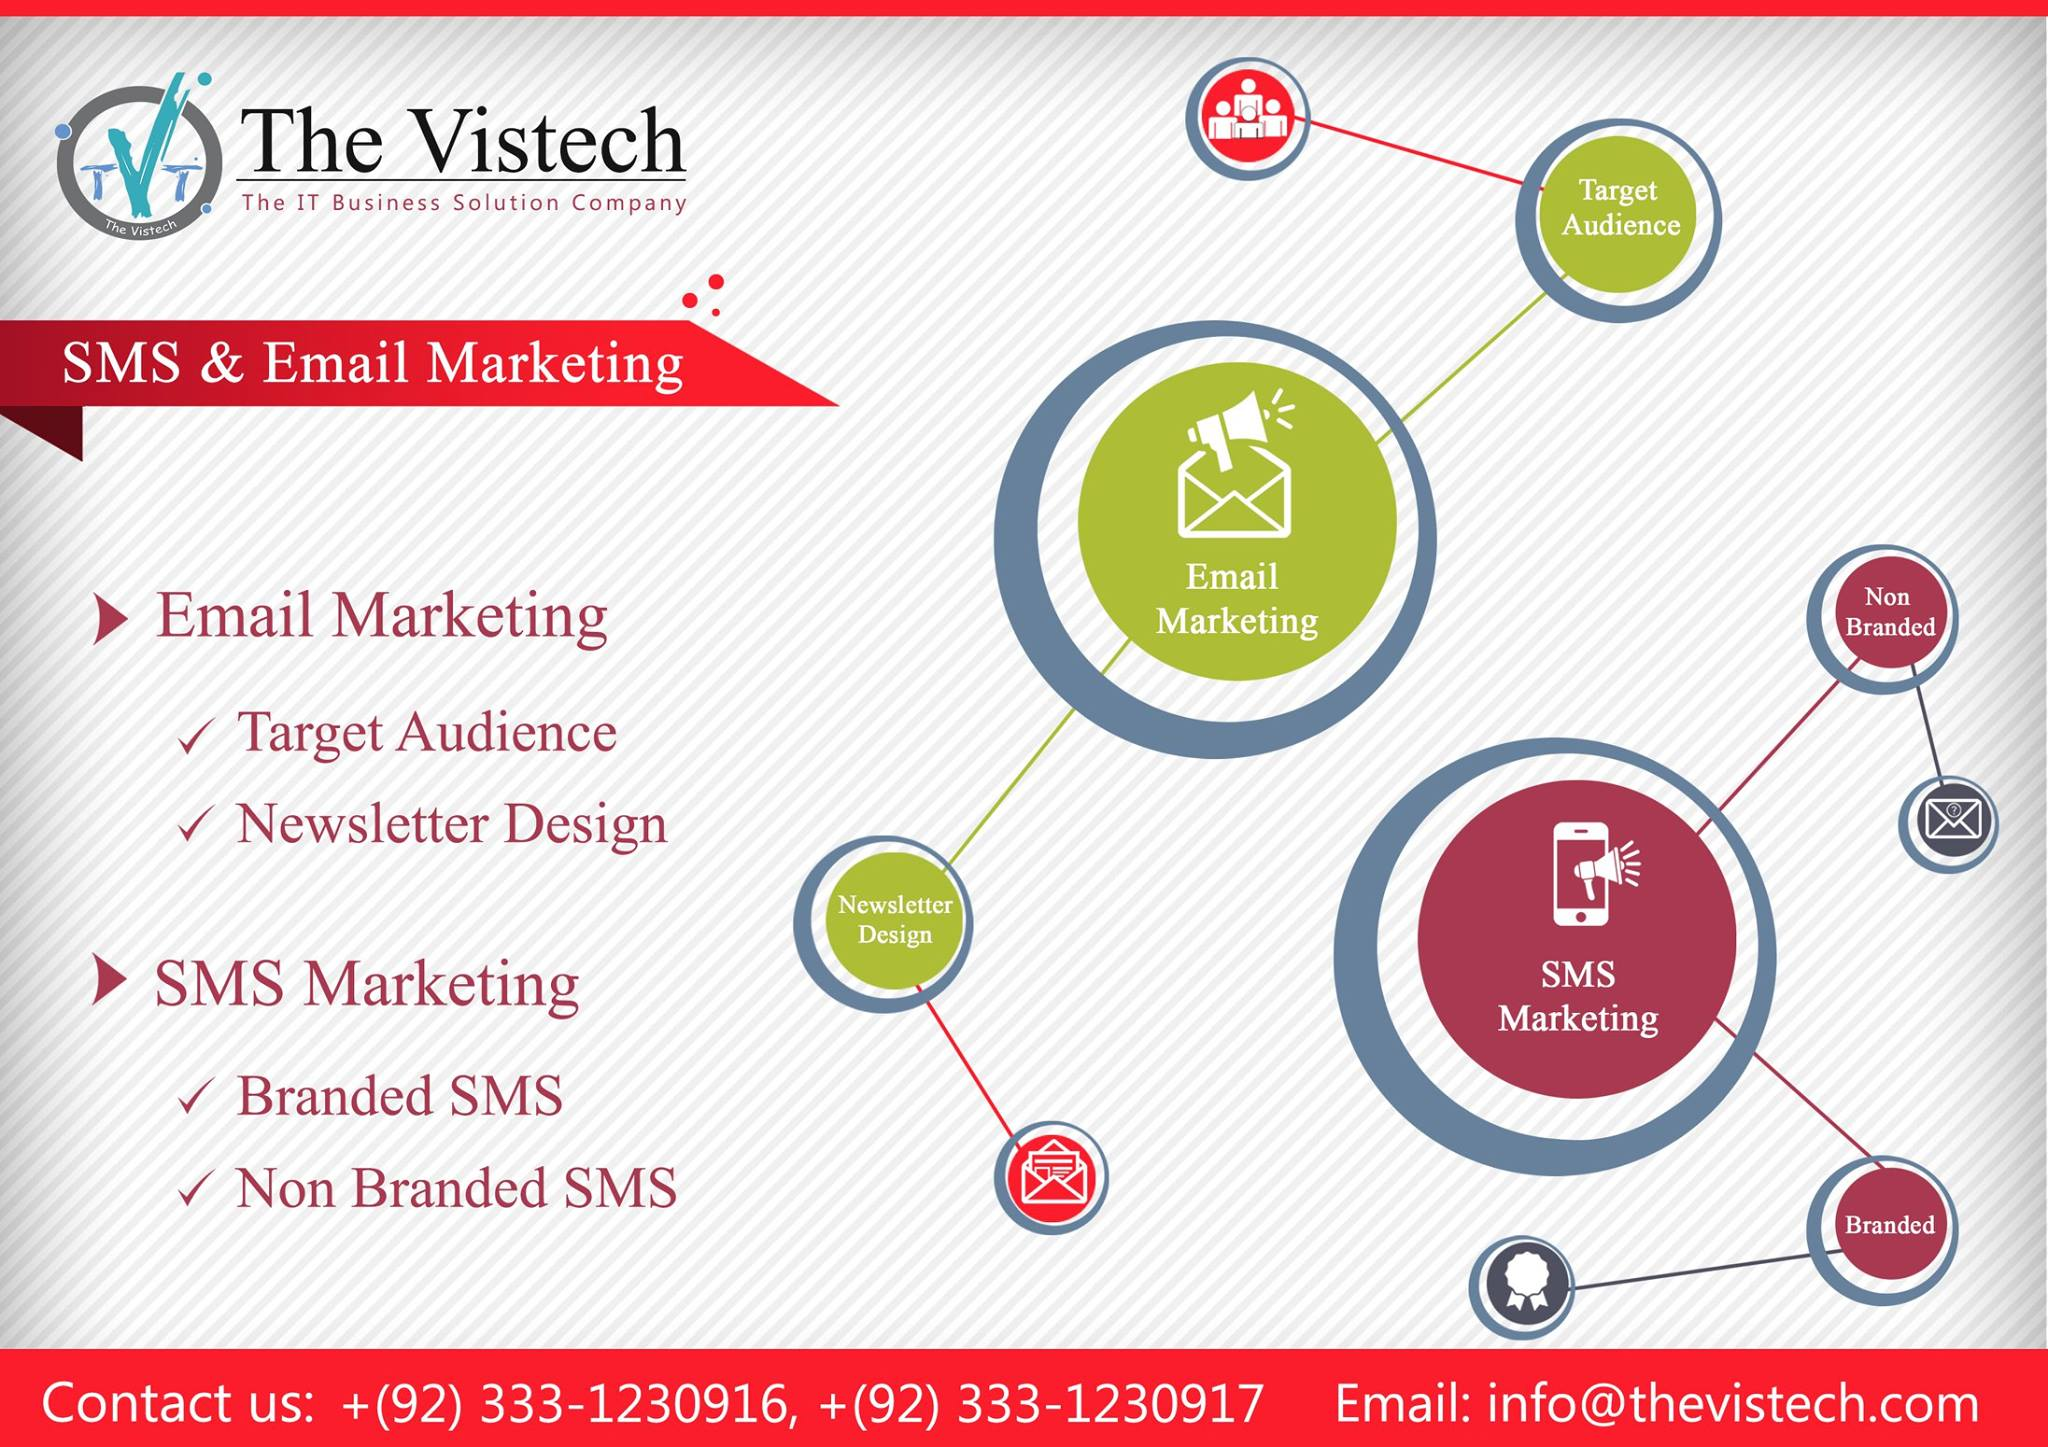 SMS and Email Marketing